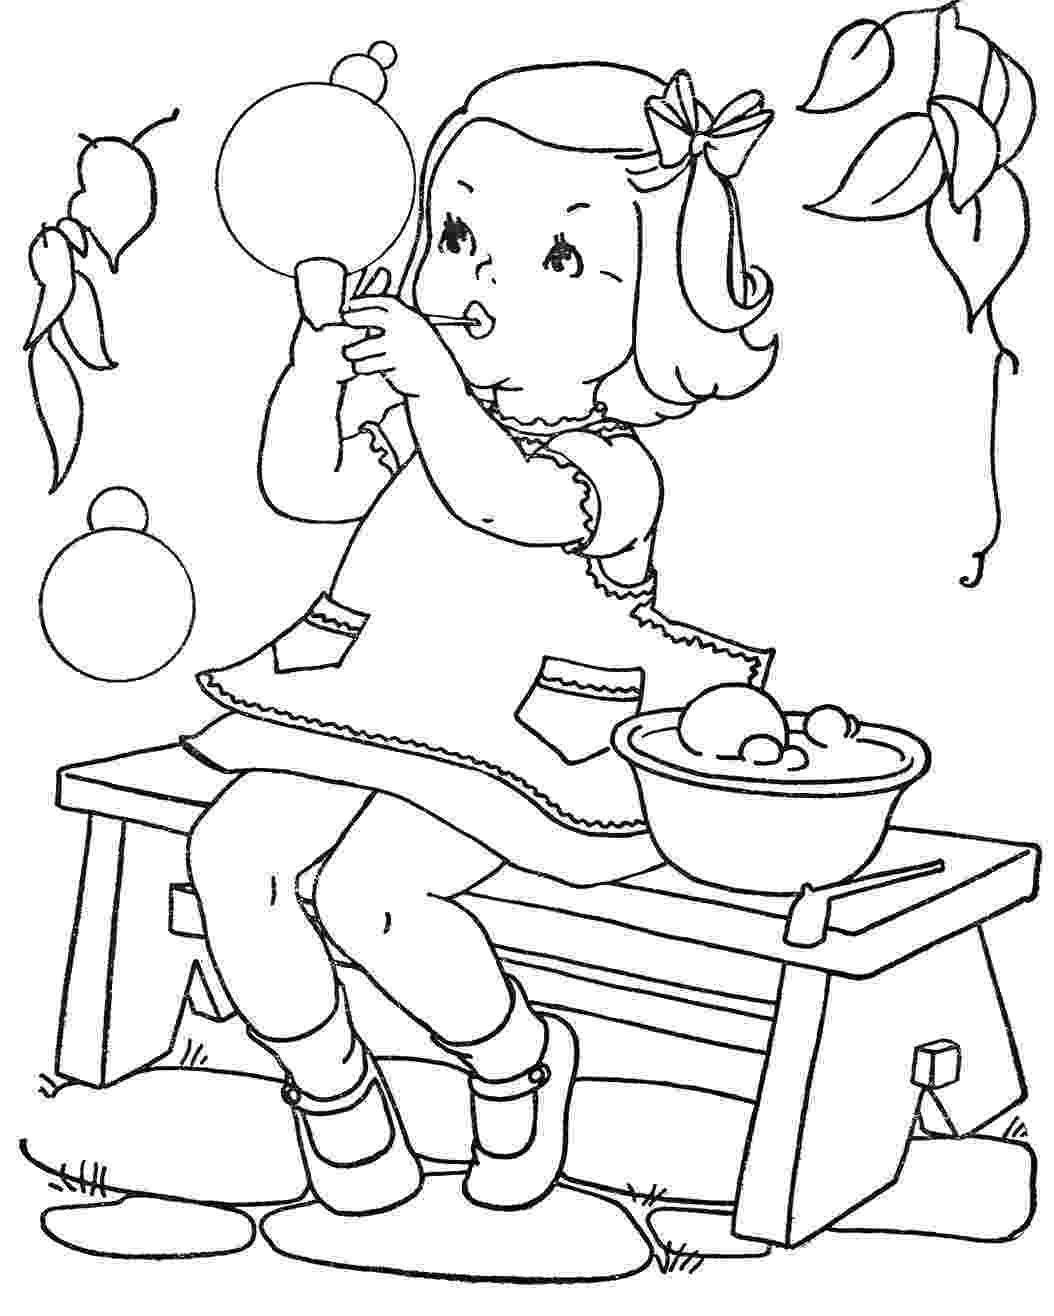 coloring pages for older girls coloring pages for 5 7 year old girls to print for free for coloring girls pages older